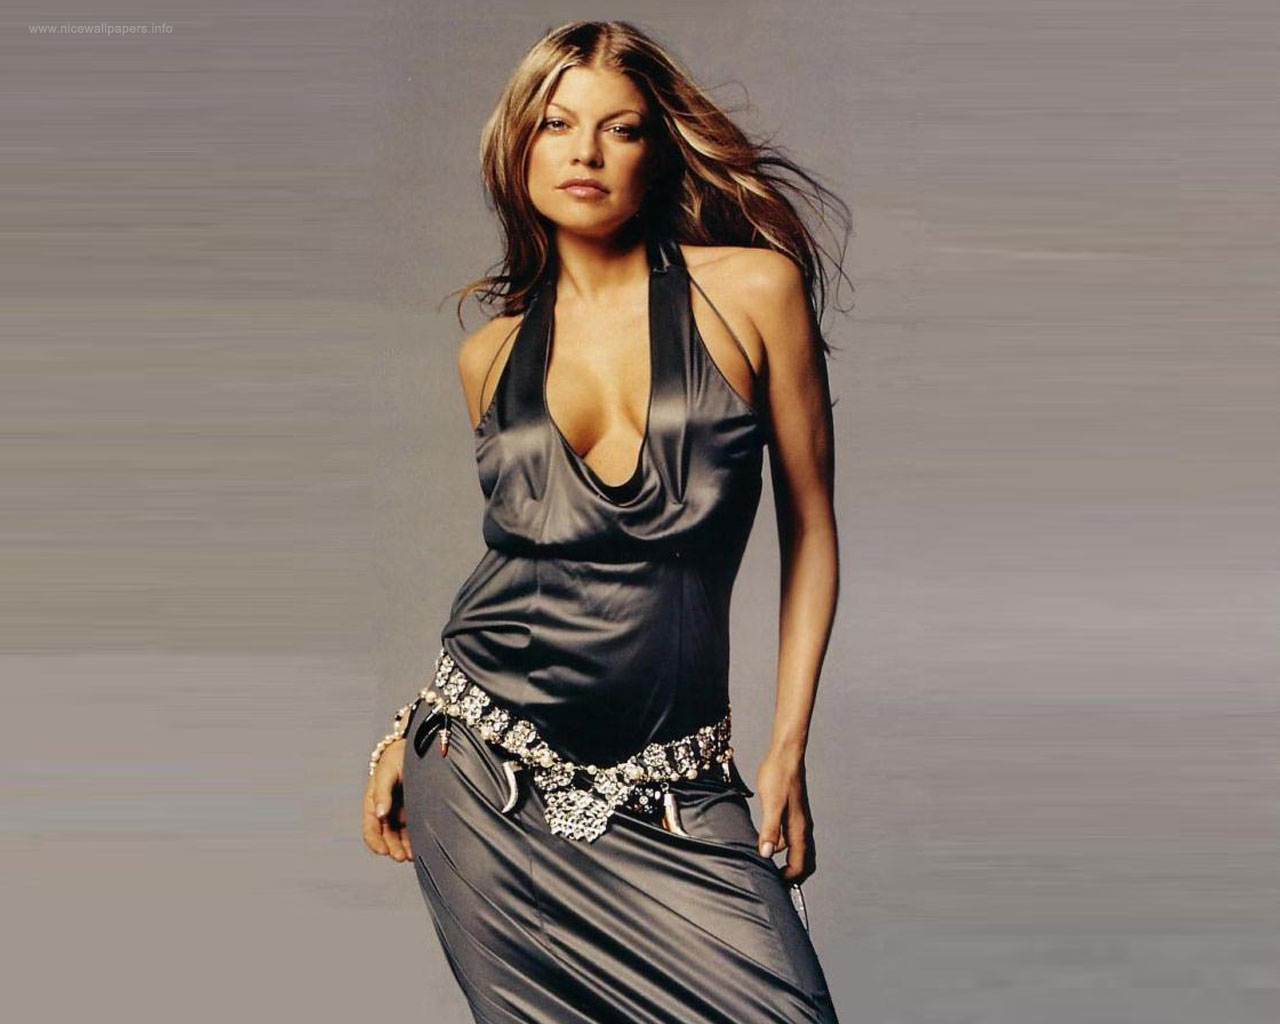 Sexy Fergie Hot Sizzling Wallpapers ~ 521 Entertainment World Fergie